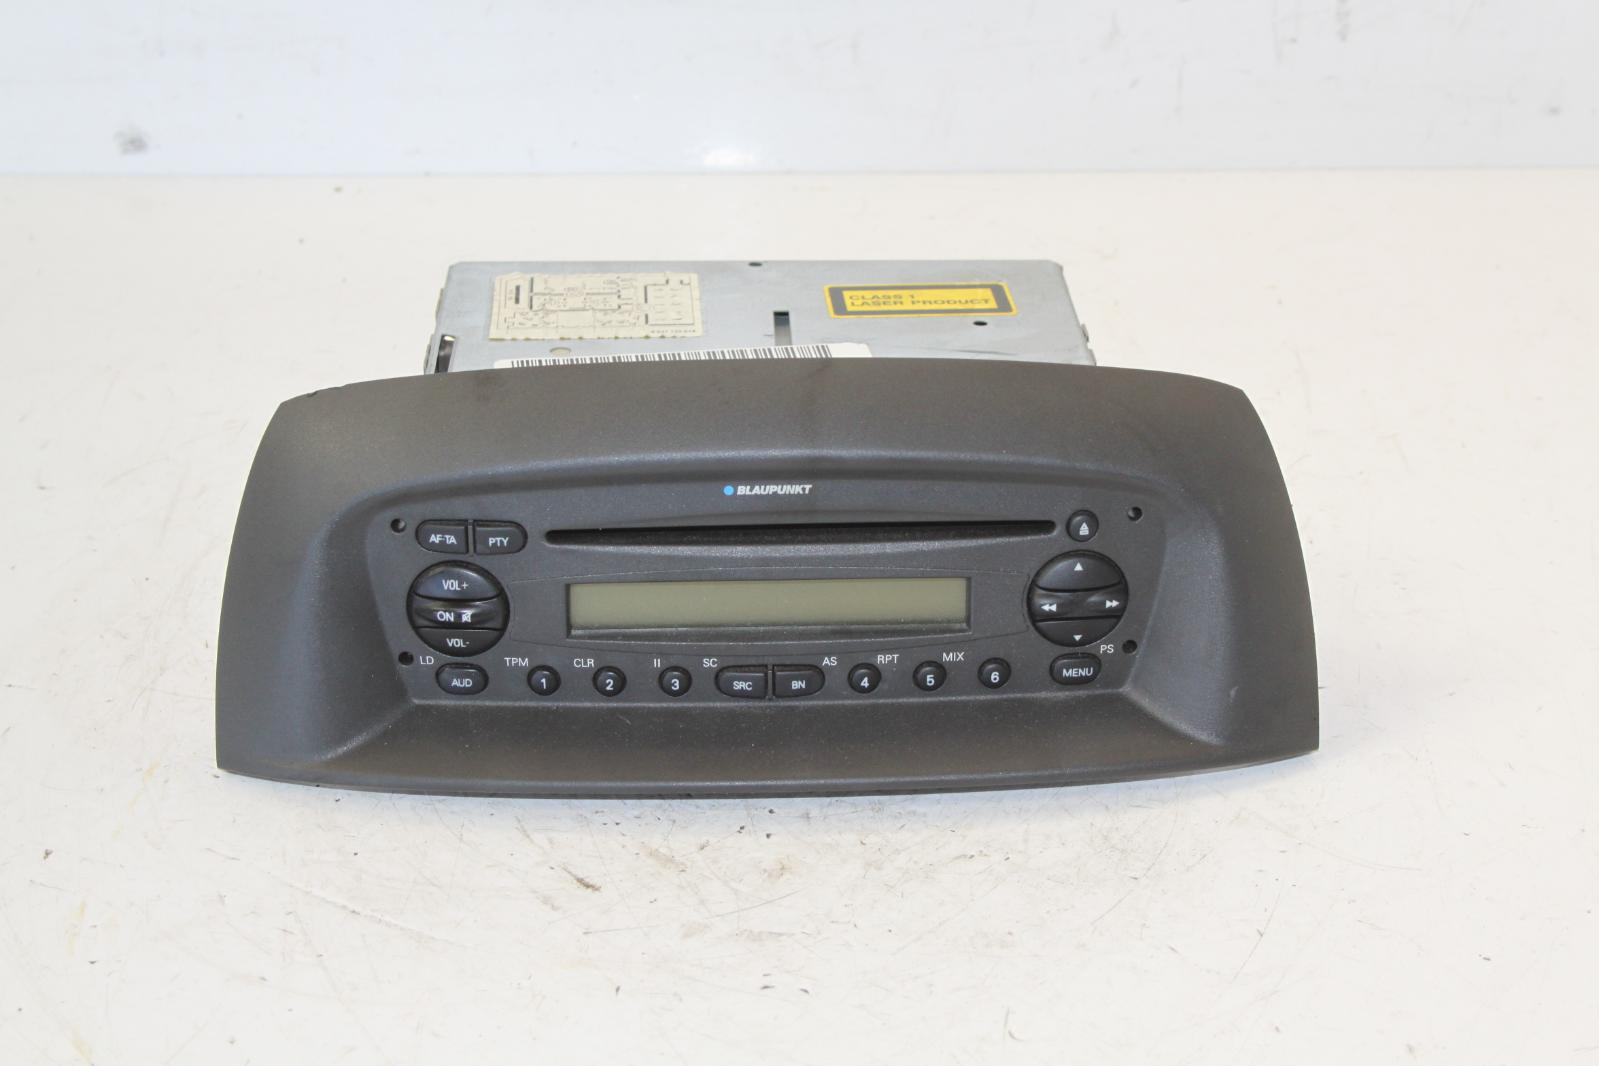 2003 Fiat Punto Blaupunkt Stereo Radio Cd Head Unit With